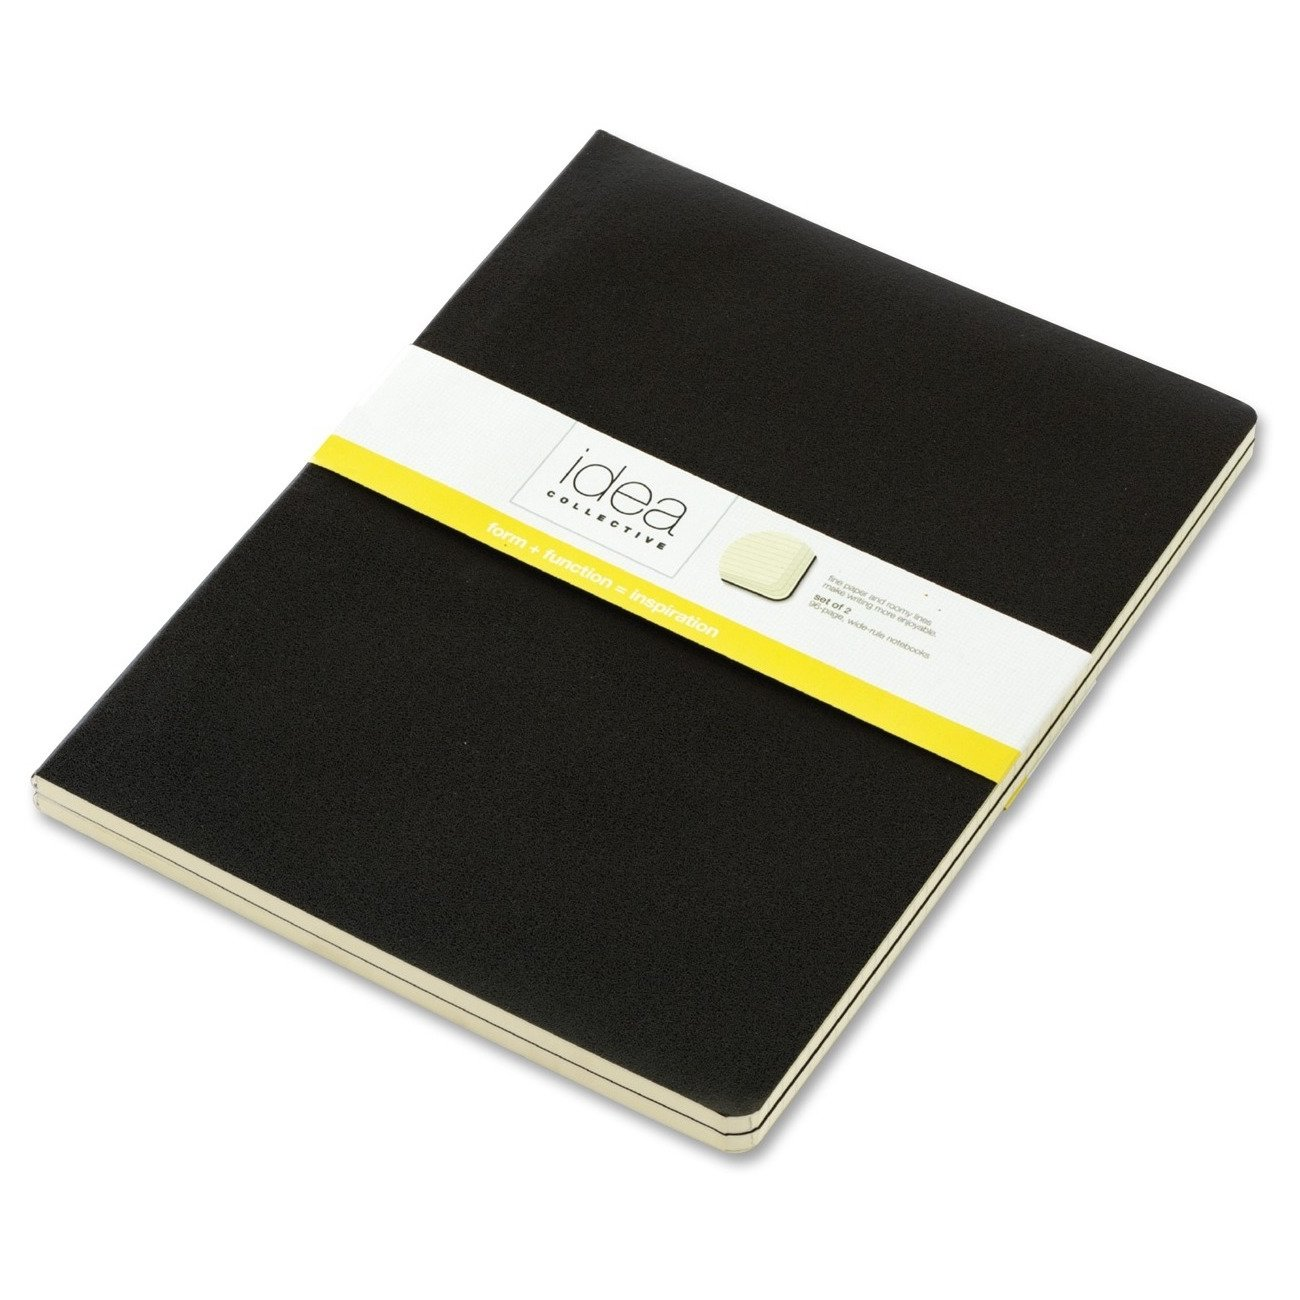 Amazon.com: Tops Idea Collective Cream Paper Notebook (TOP56879): Office  Products